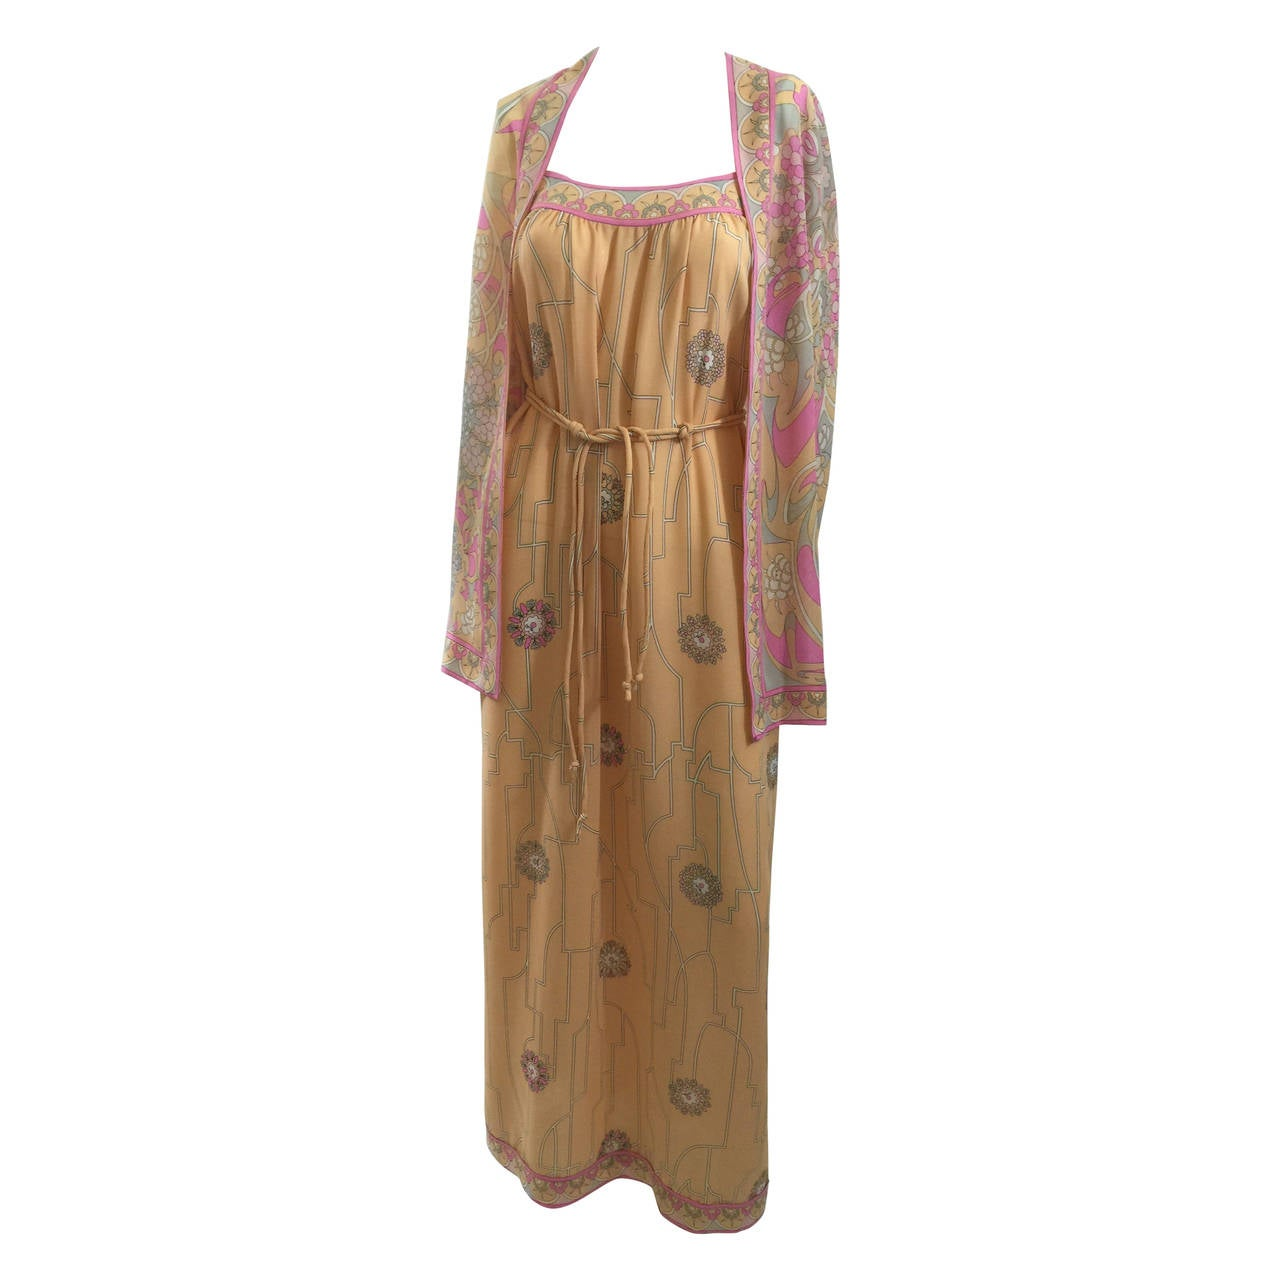 Ethereal 1960'S Emilio Pucci Vintage Silk Dress & Jacket Set Vintage w/ Tags